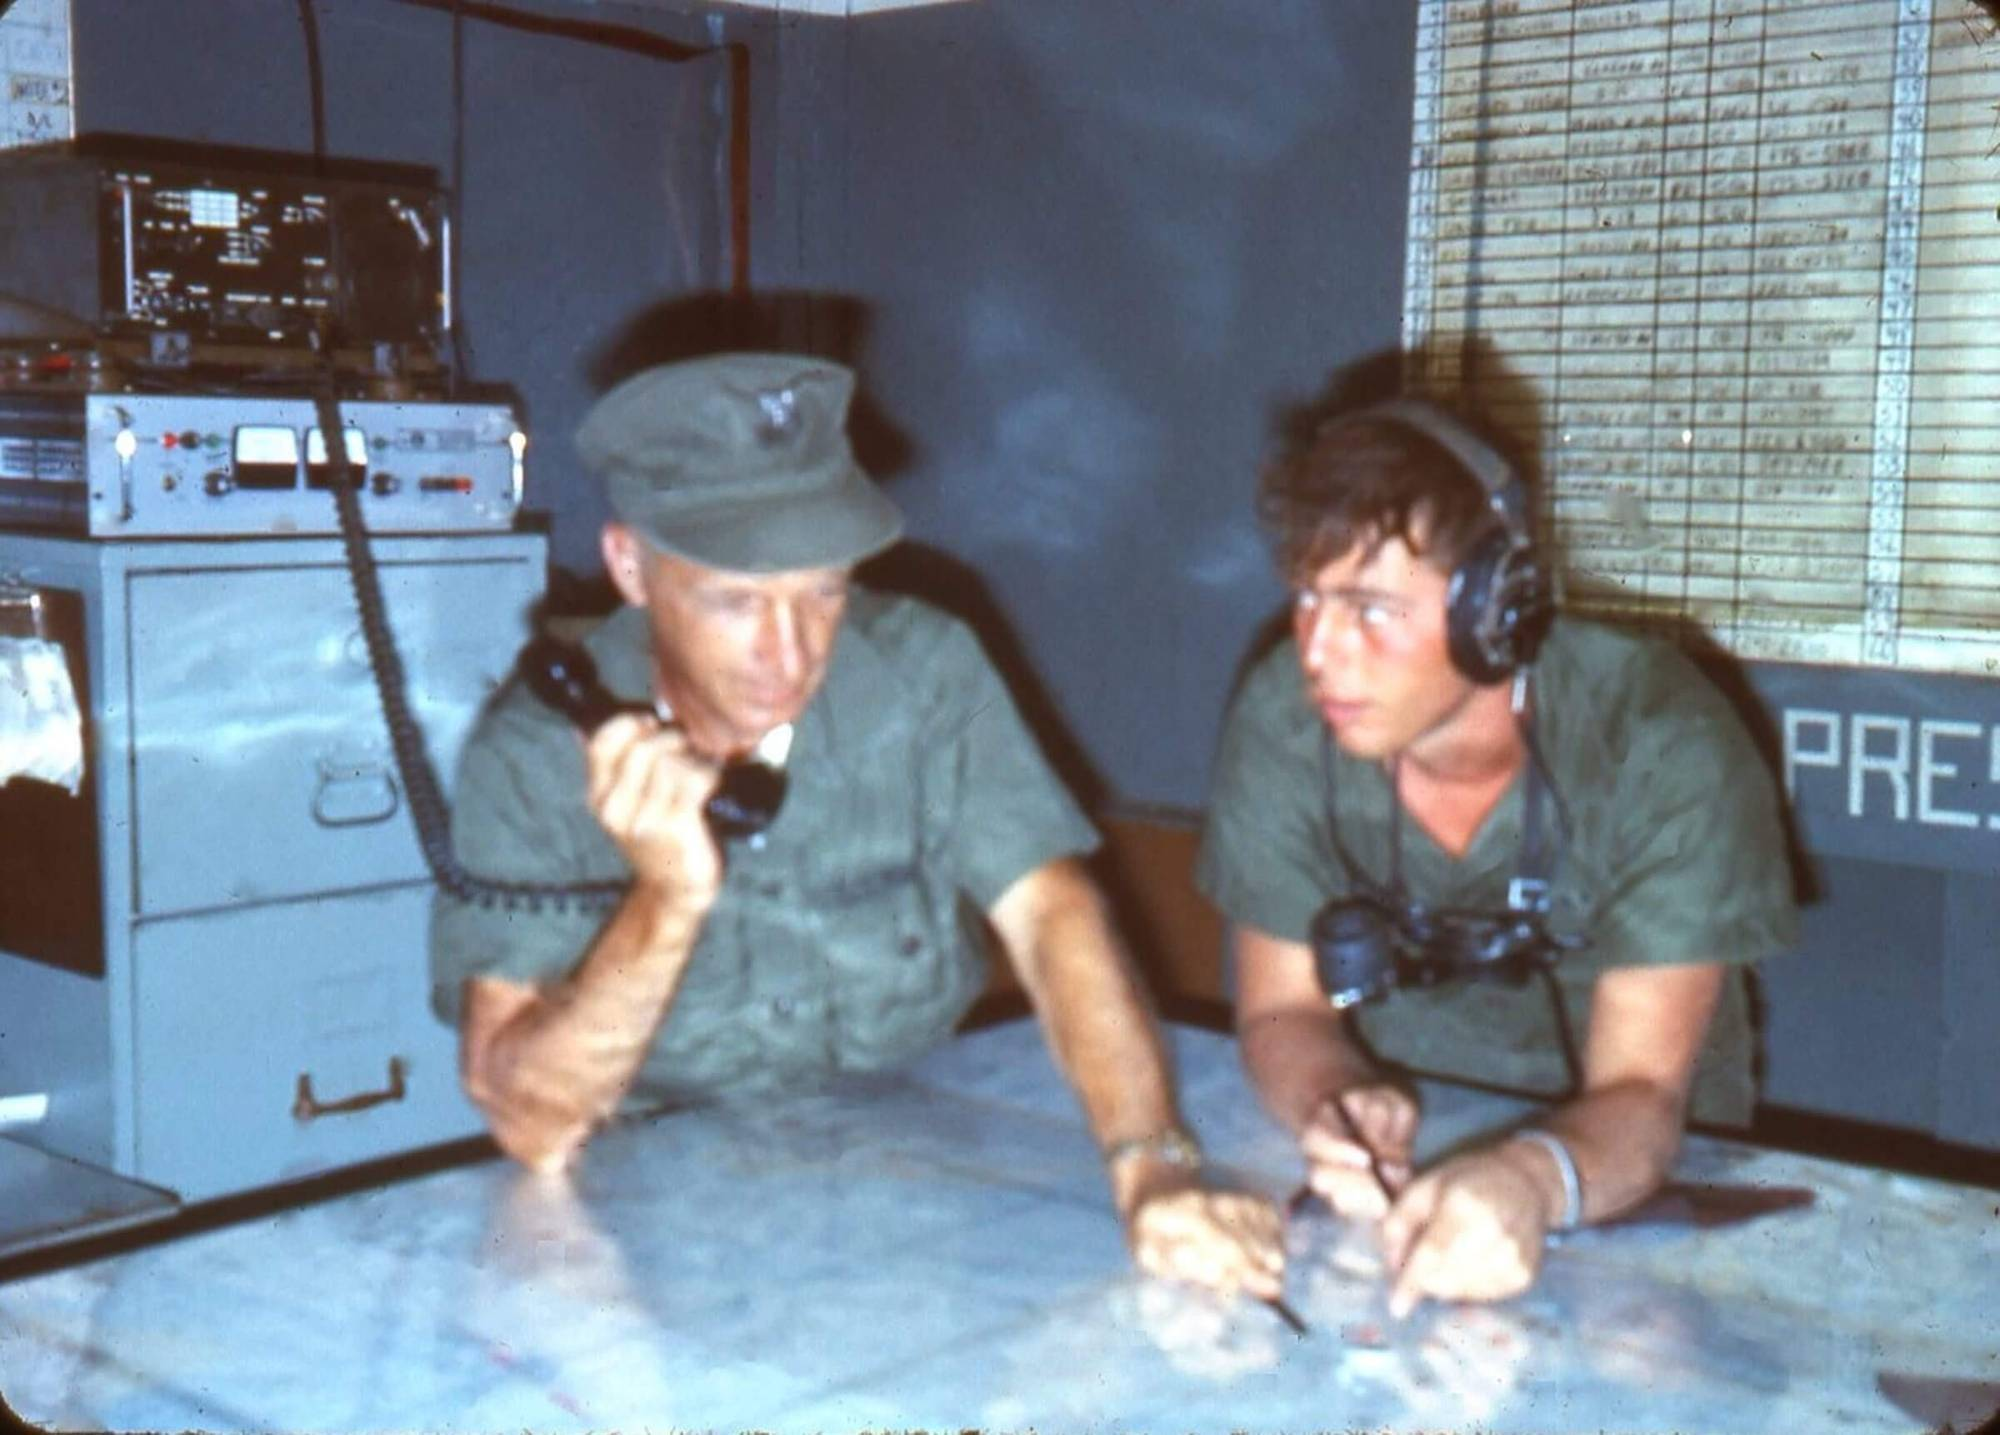 Two soldiers, one young and one old, leaning over table and talking into a phone.